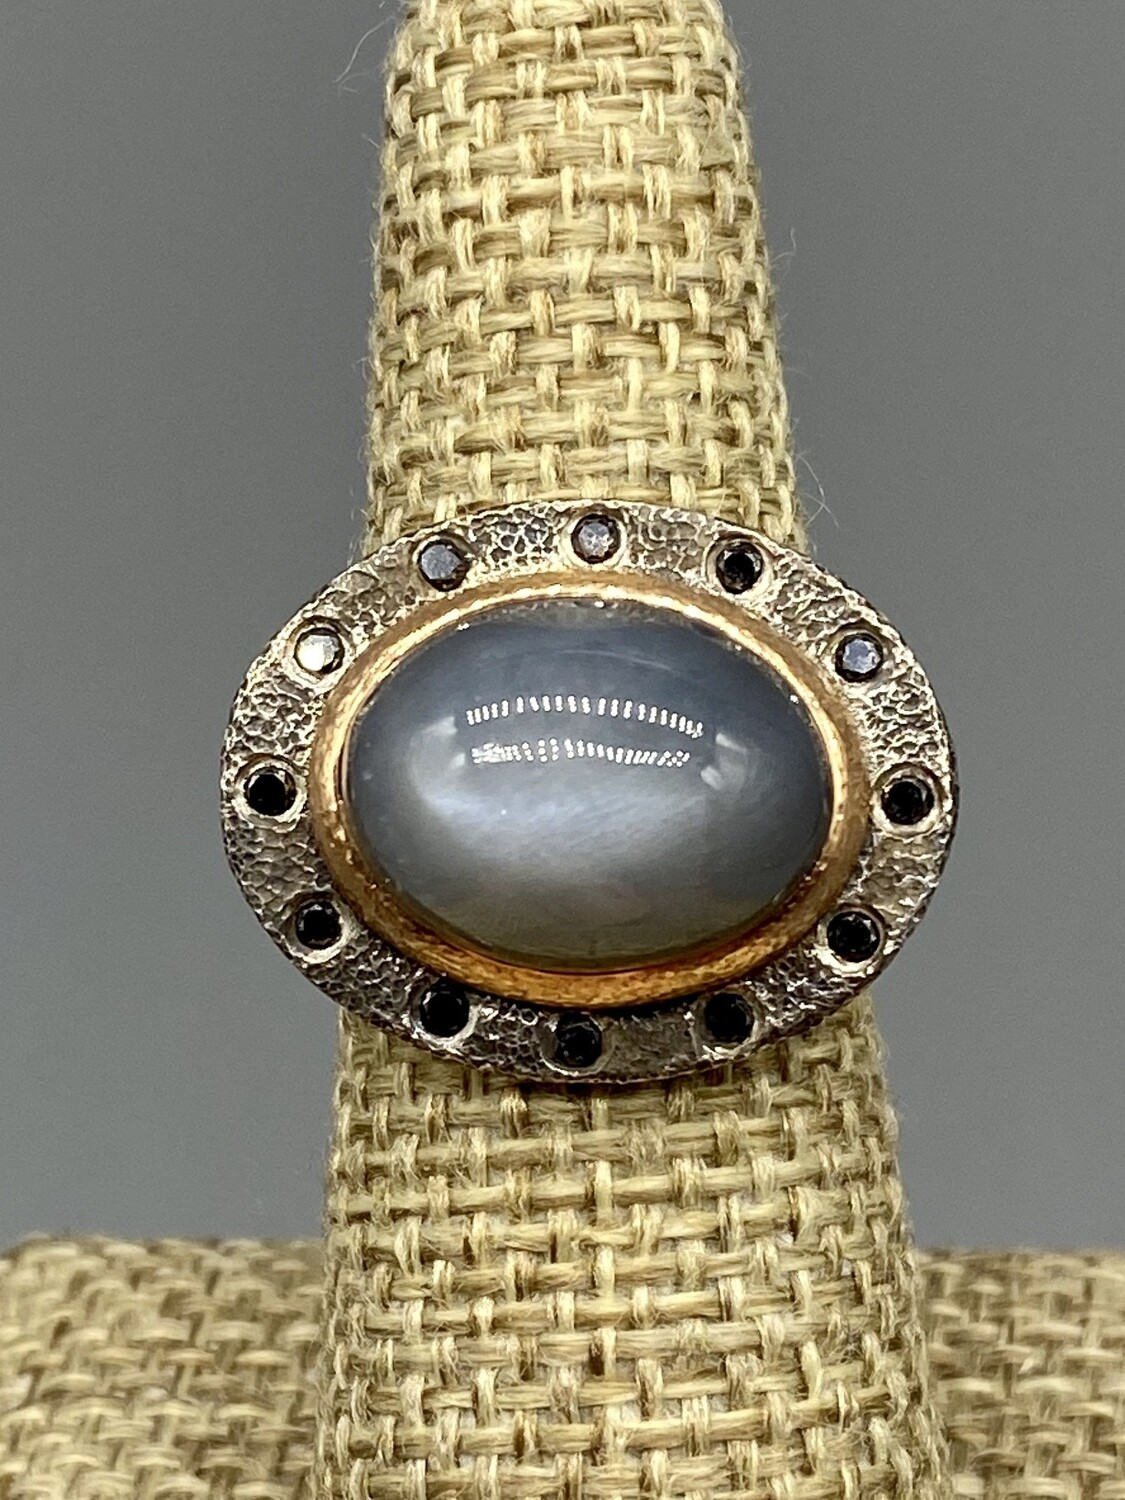 Sz 7 Misty Grey Moonstone  18k Rose Gold w/Black Diamonds (.25 tcw) Ring - Rona Fisher Philadelphia PA